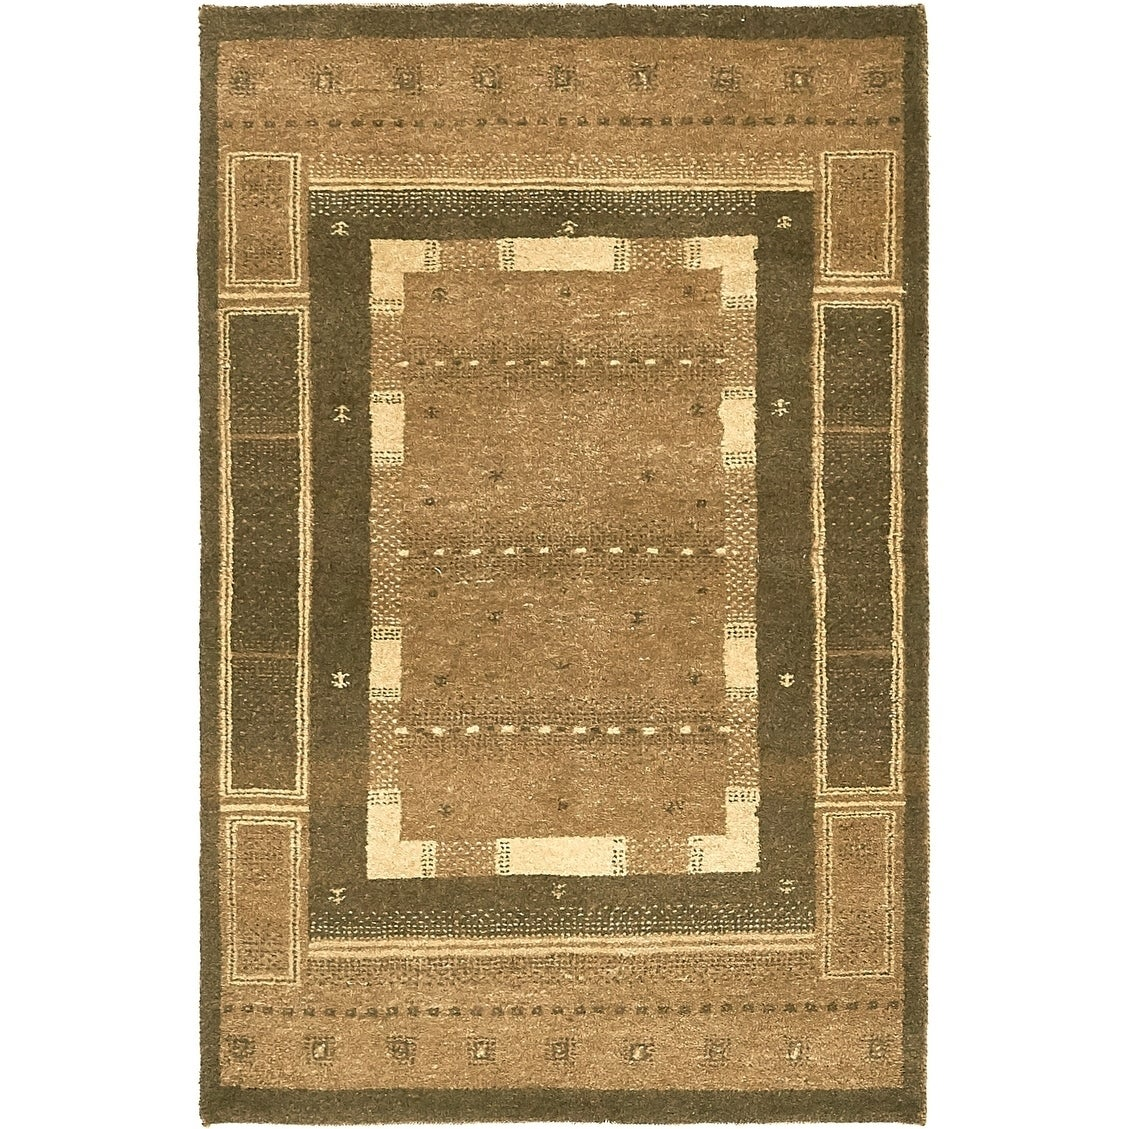 Hand Knotted Kashkuli Gabbeh Wool Area Rug - 3 2 x 4 10 (Brown - 3 2 x 4 10)